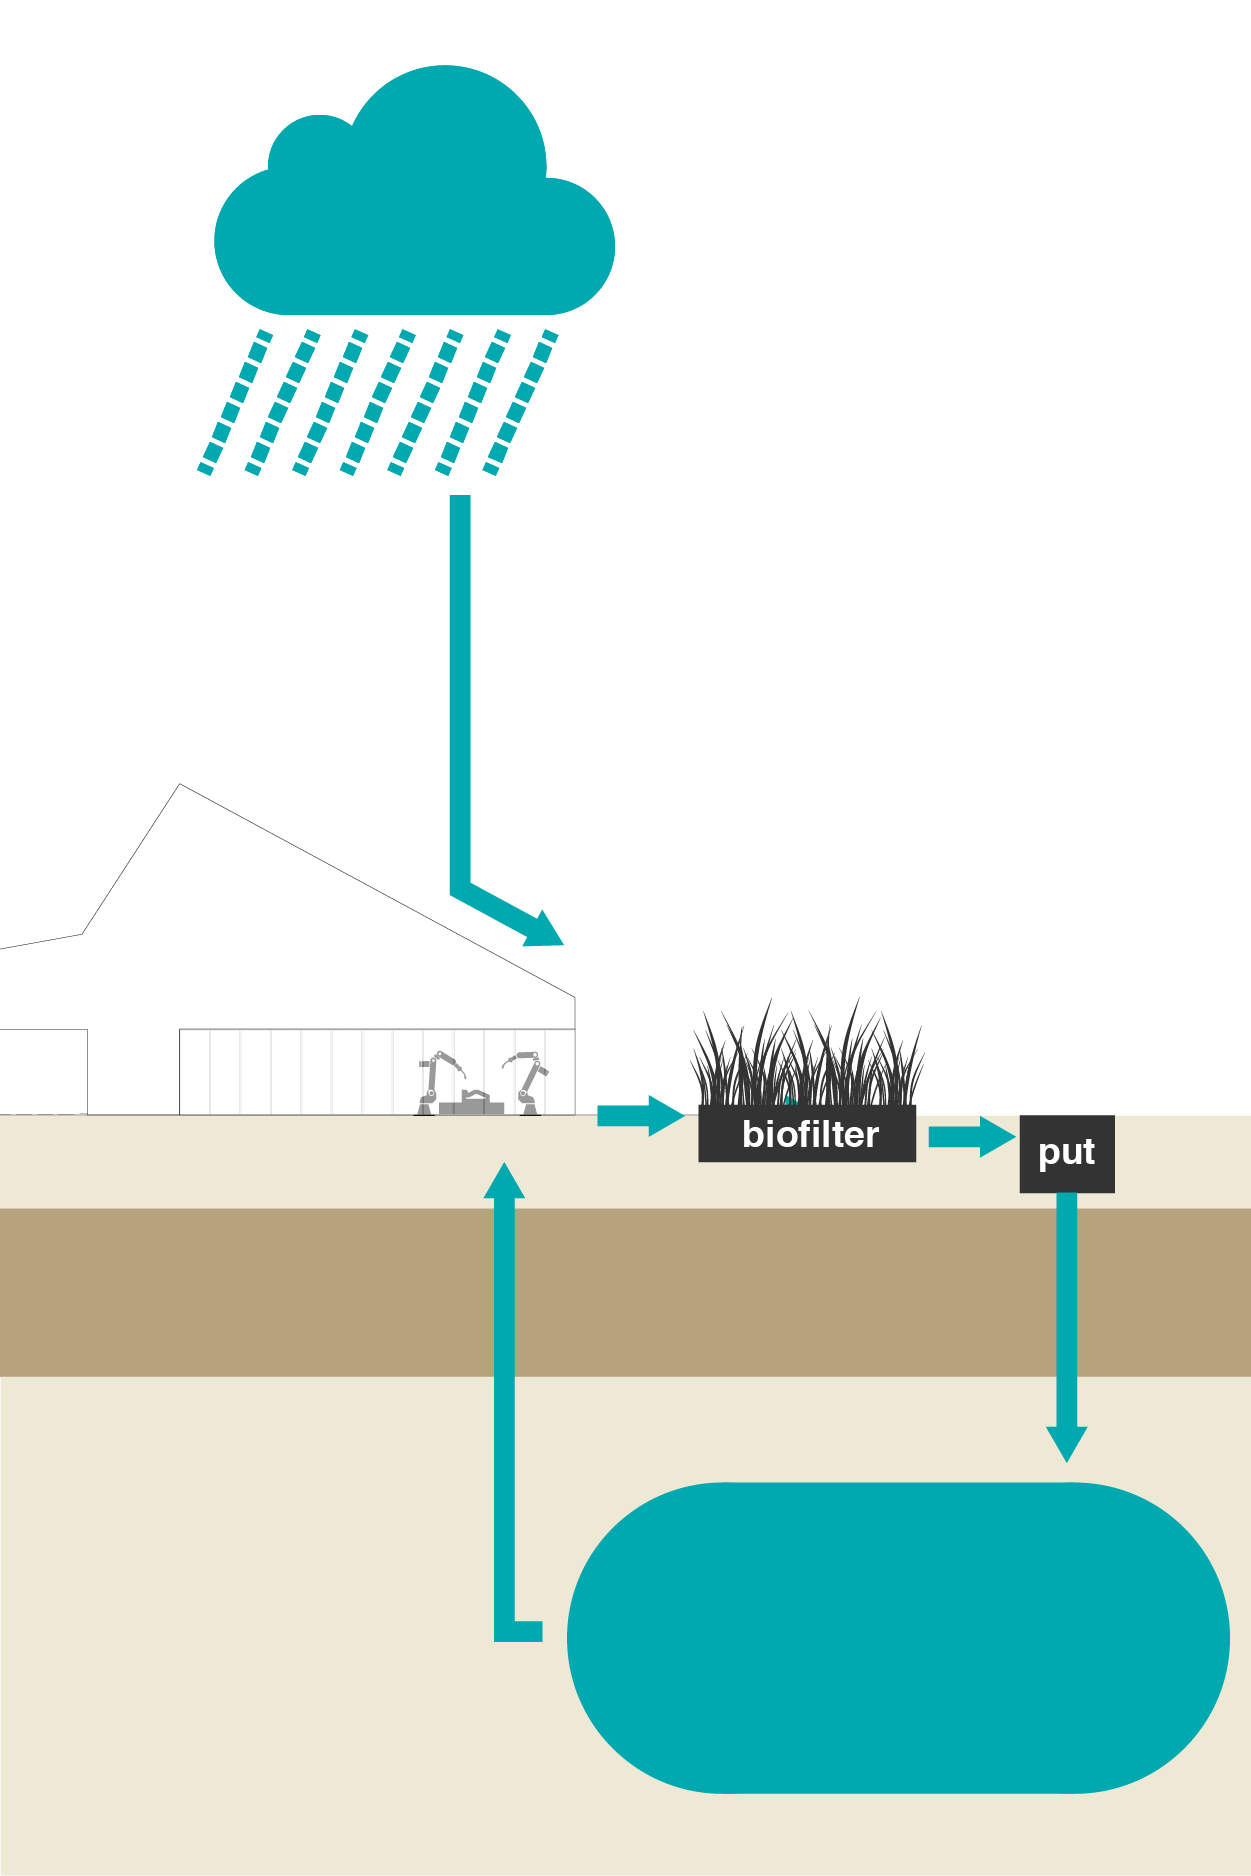 Reduce the water footprint - System components: Biofilter and Installations.Bluebloqs treats rainwater and/or wastewater and stores it under your site in the subsurface. This reduces discharge into the sewer and at the same time creates a new freshwater source.The recovered water can be reused for fire extinguishing water, irrigation or industrial processes. This reduces the water footprint of your company and you save on the water bill.This solution is suitable for large companies with a surface area of 2+ hectares, with water consumption of 10,000+ m3 per year, such as sports facilities, hotel, and wellness resorts, market halls, and industries.